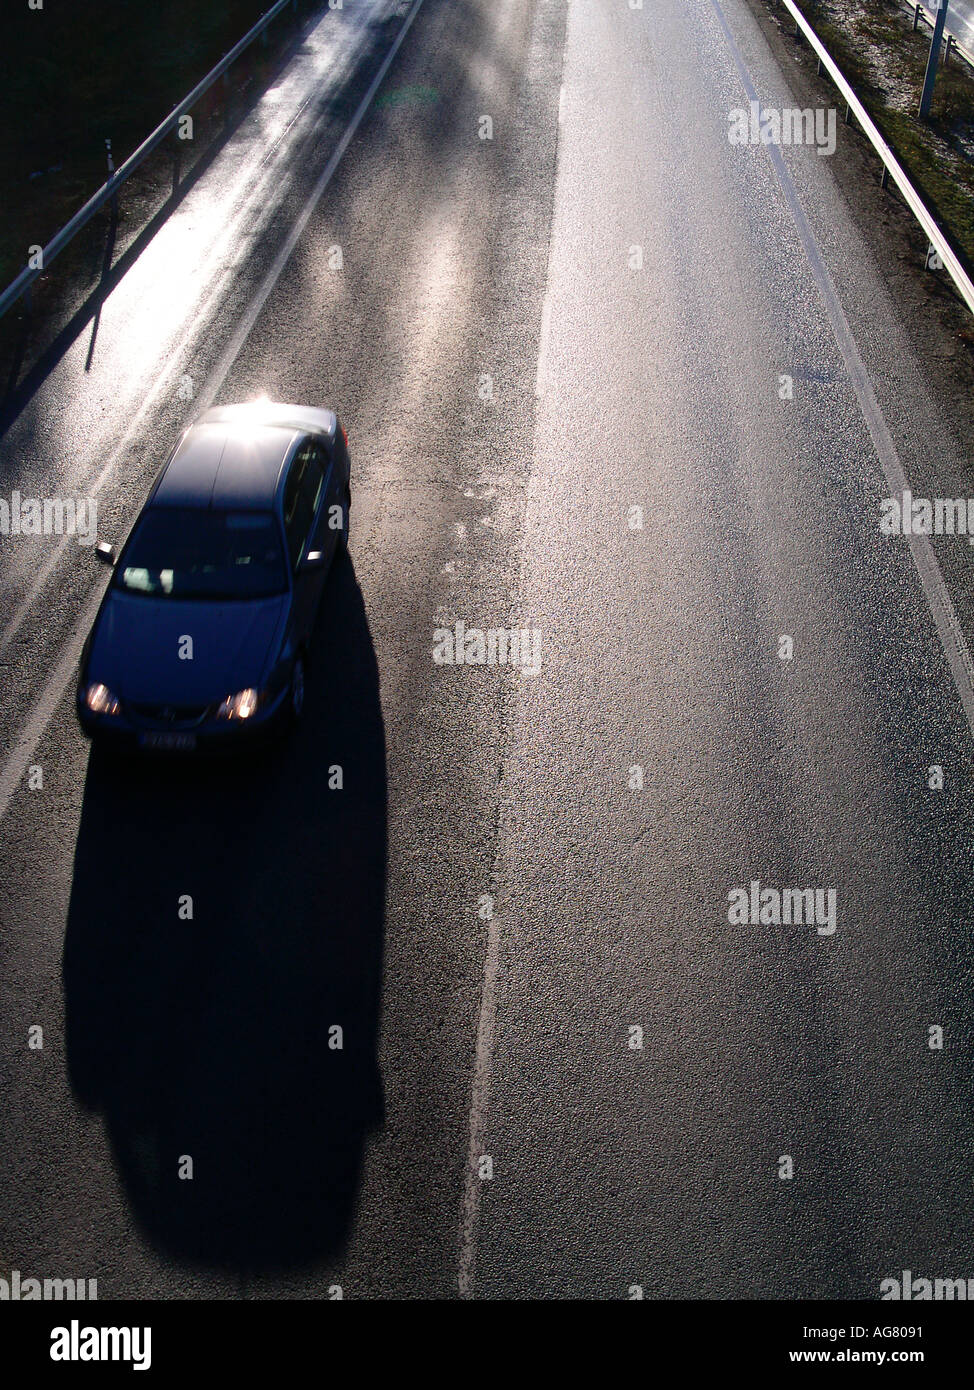 traffic on a divided motorway highway - Stock Image